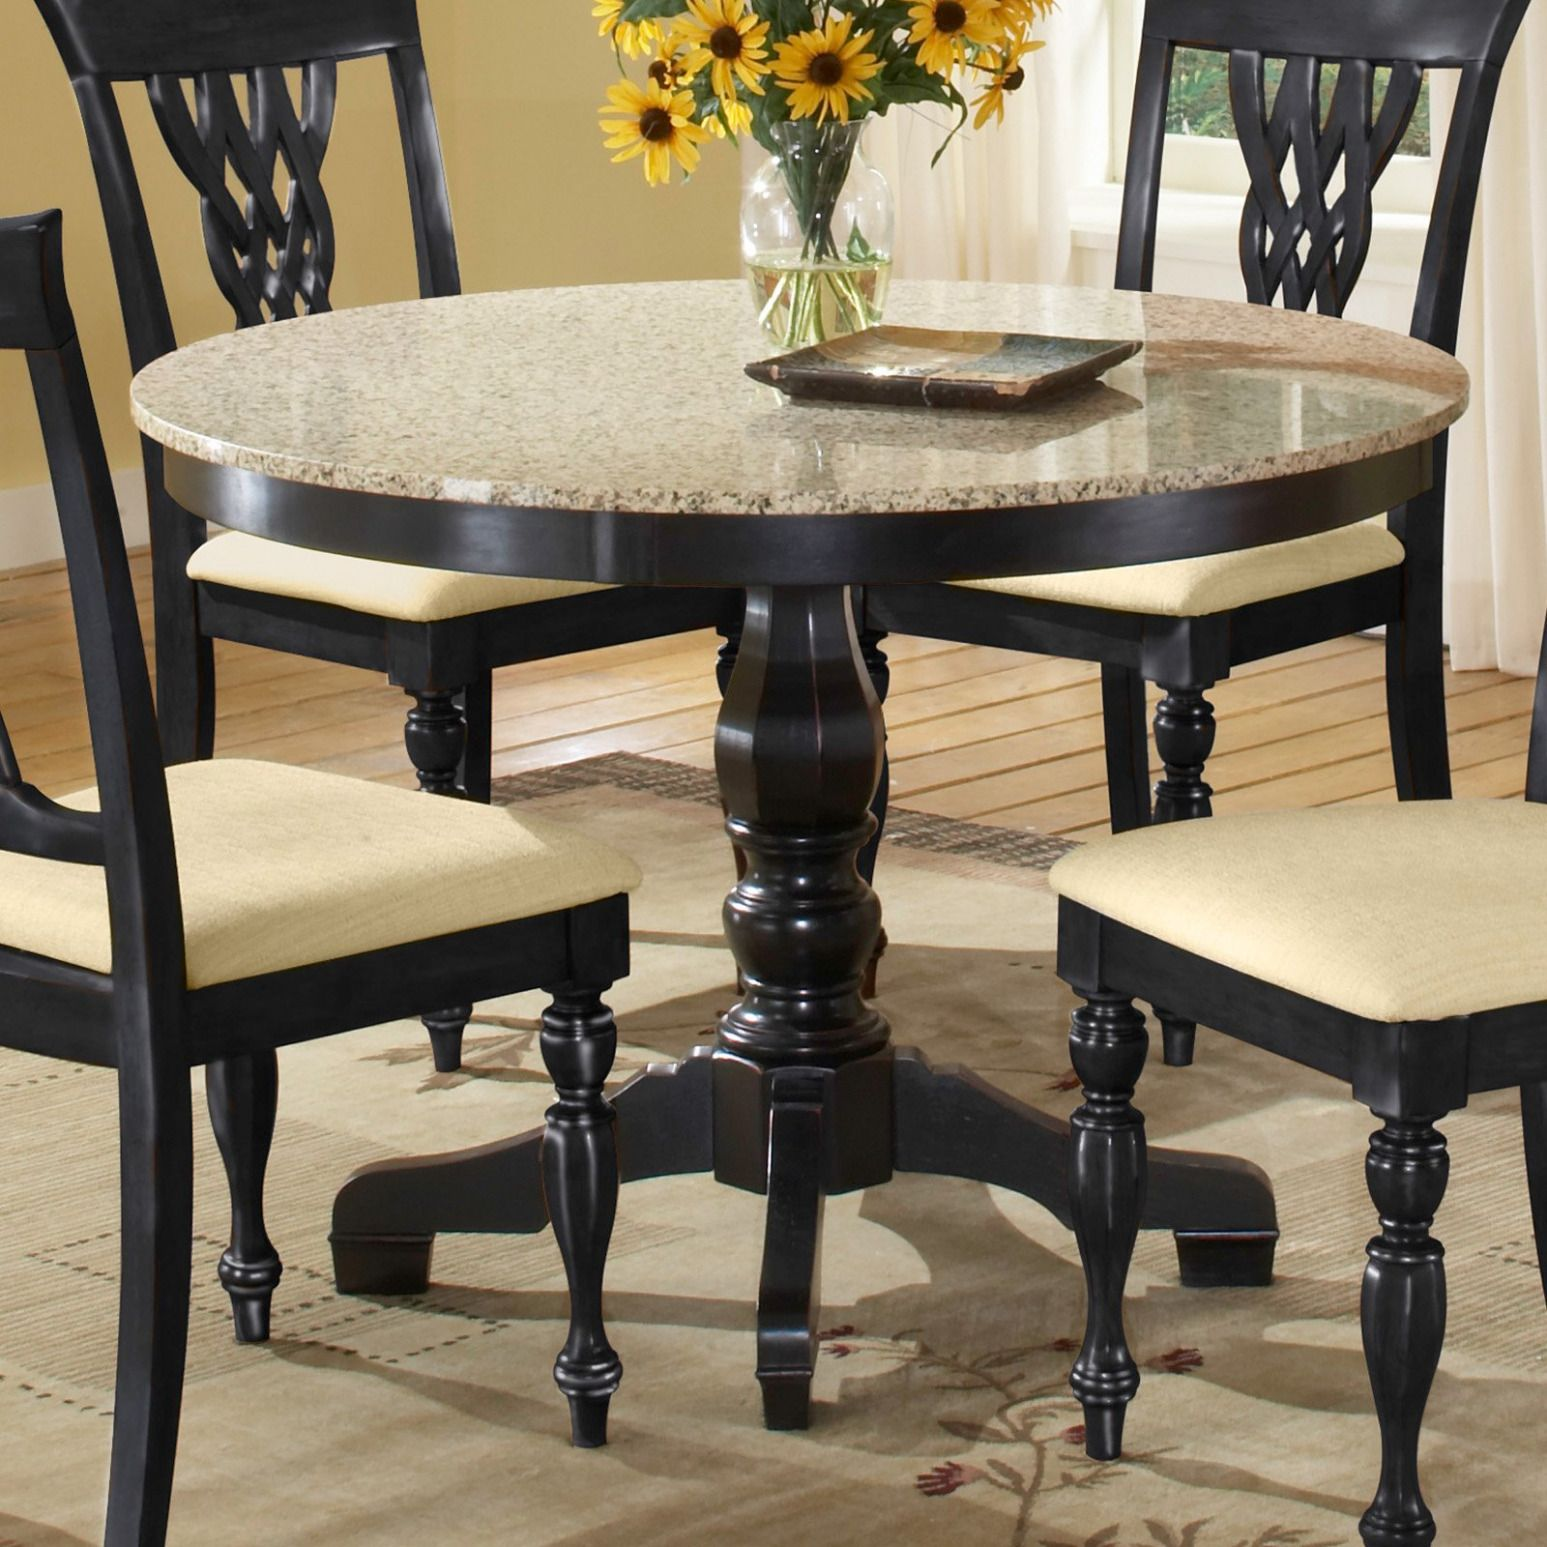 100+ Round Granite Table Top   Best Paint For Furniture Check More At  Http://livelylighting.com/round Granite Table Top/